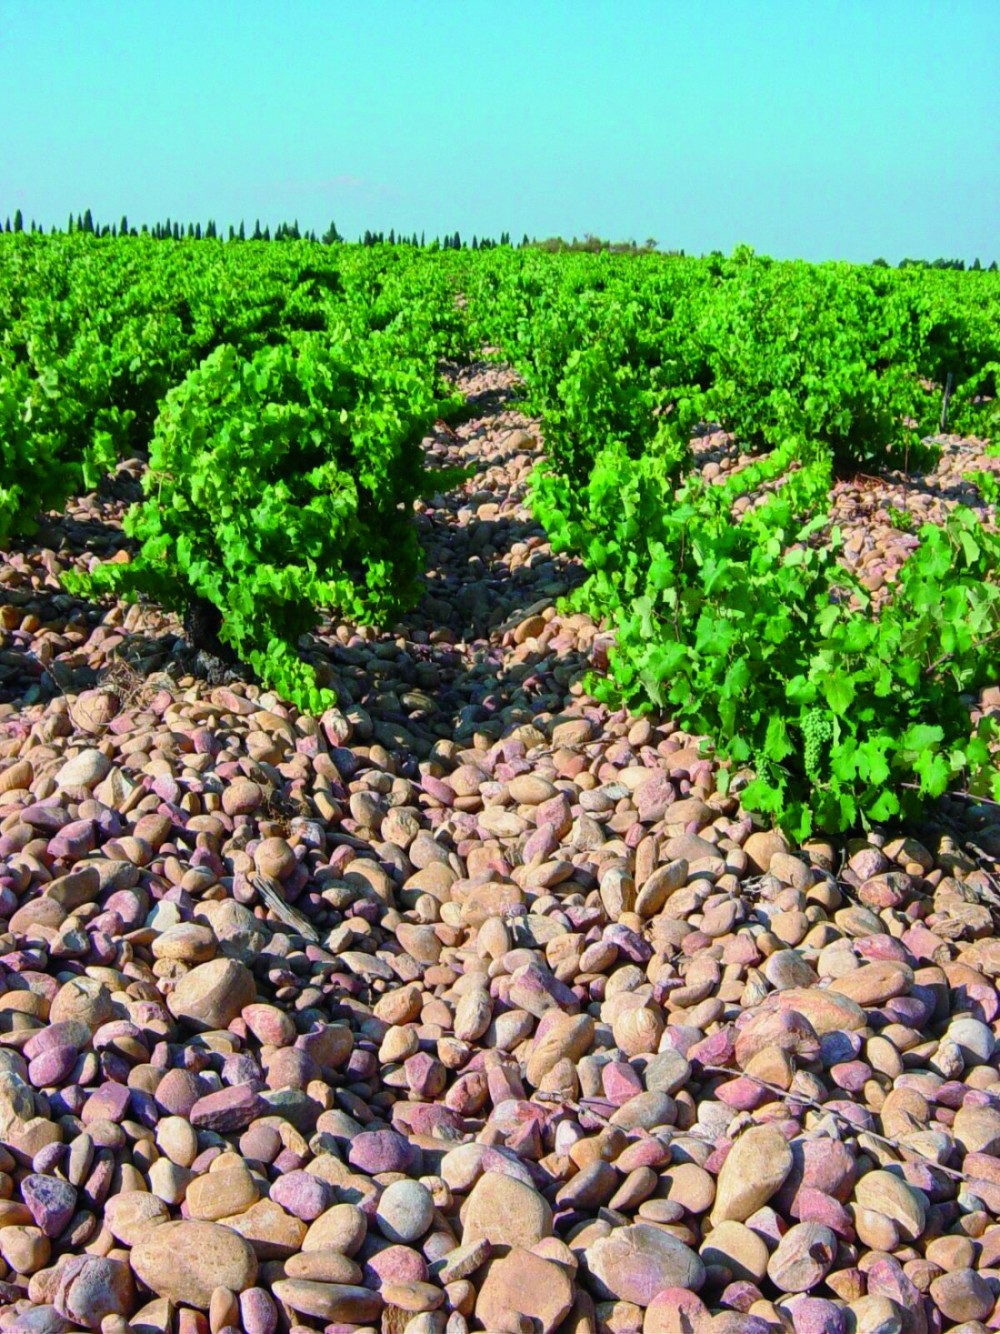 Chateauneuf vinrankor